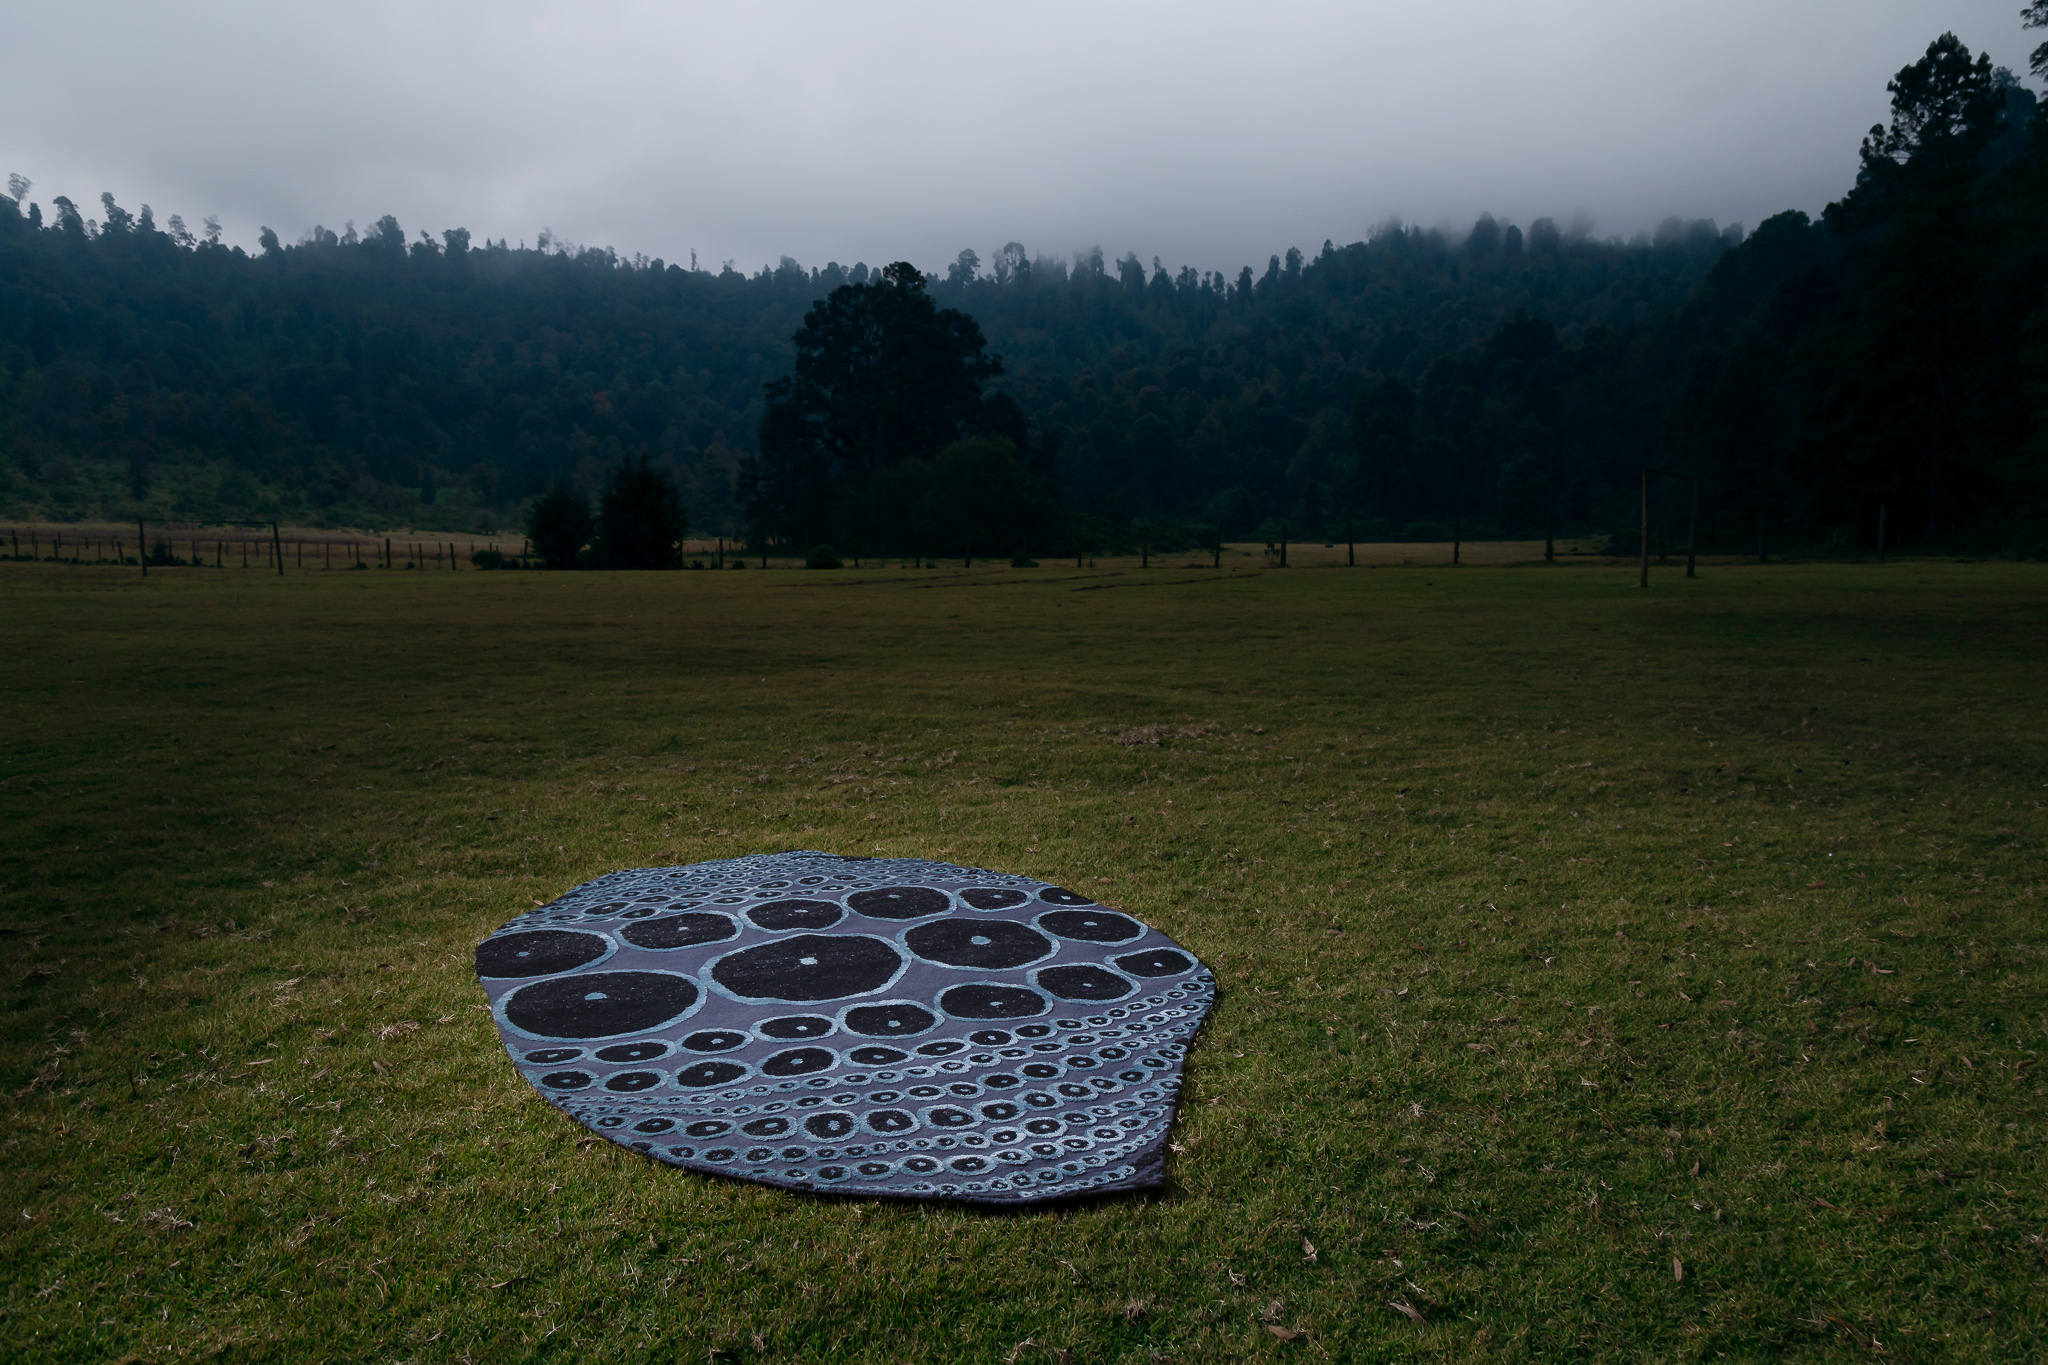 Water Fossil Rug by Jose Maria balmaceda for Ángulo Cero_Photo by Jose Margaleff